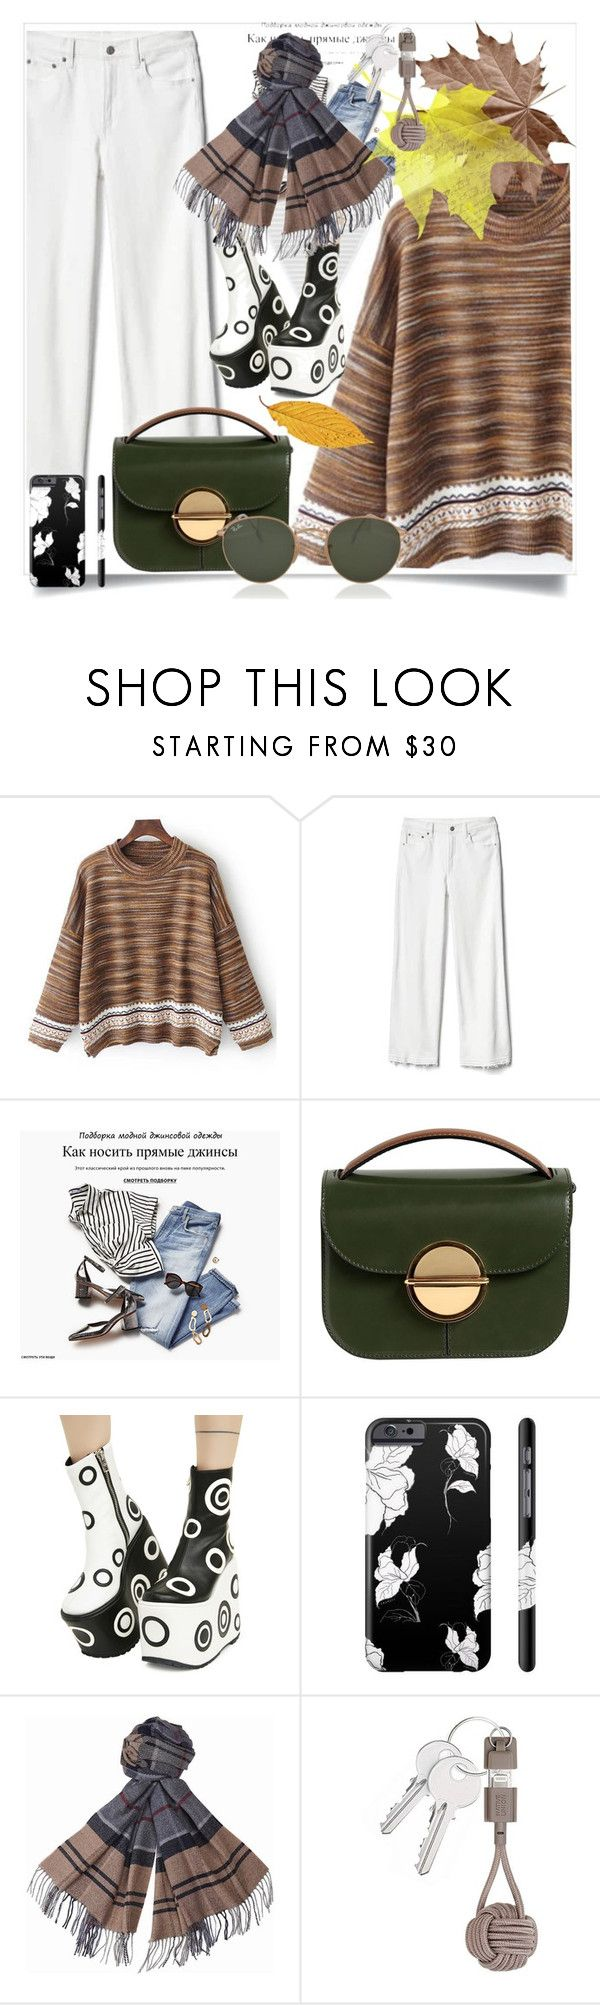 """Sweater in Autumn"" by ilona-828 ❤ liked on Polyvore featuring Gap, Marni, Current Mood, Barbour, Native Union and Ray-Ban"